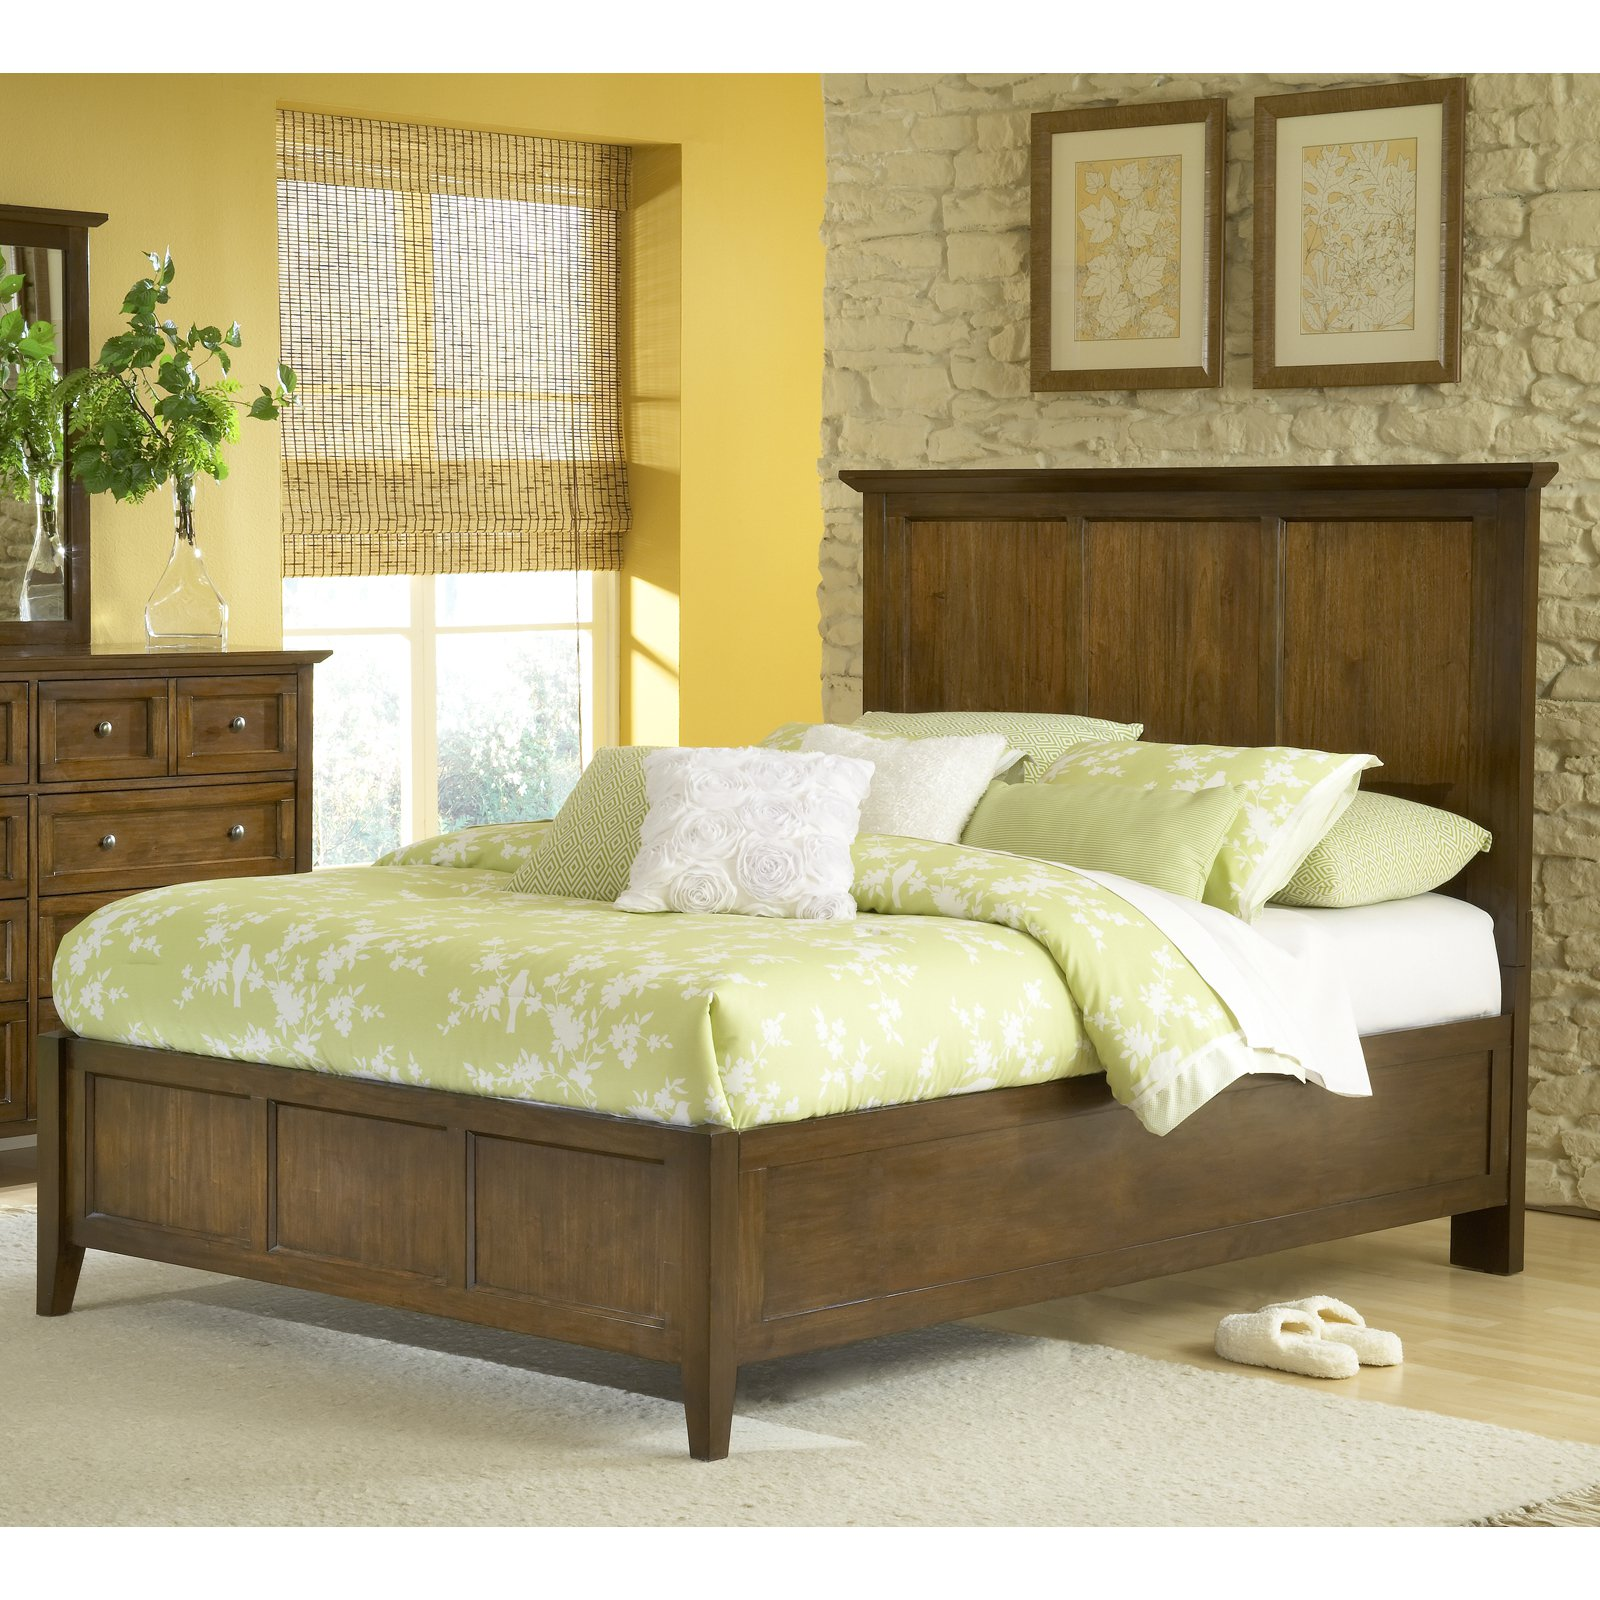 Modus Furniture Paragon Panel Storage Bed